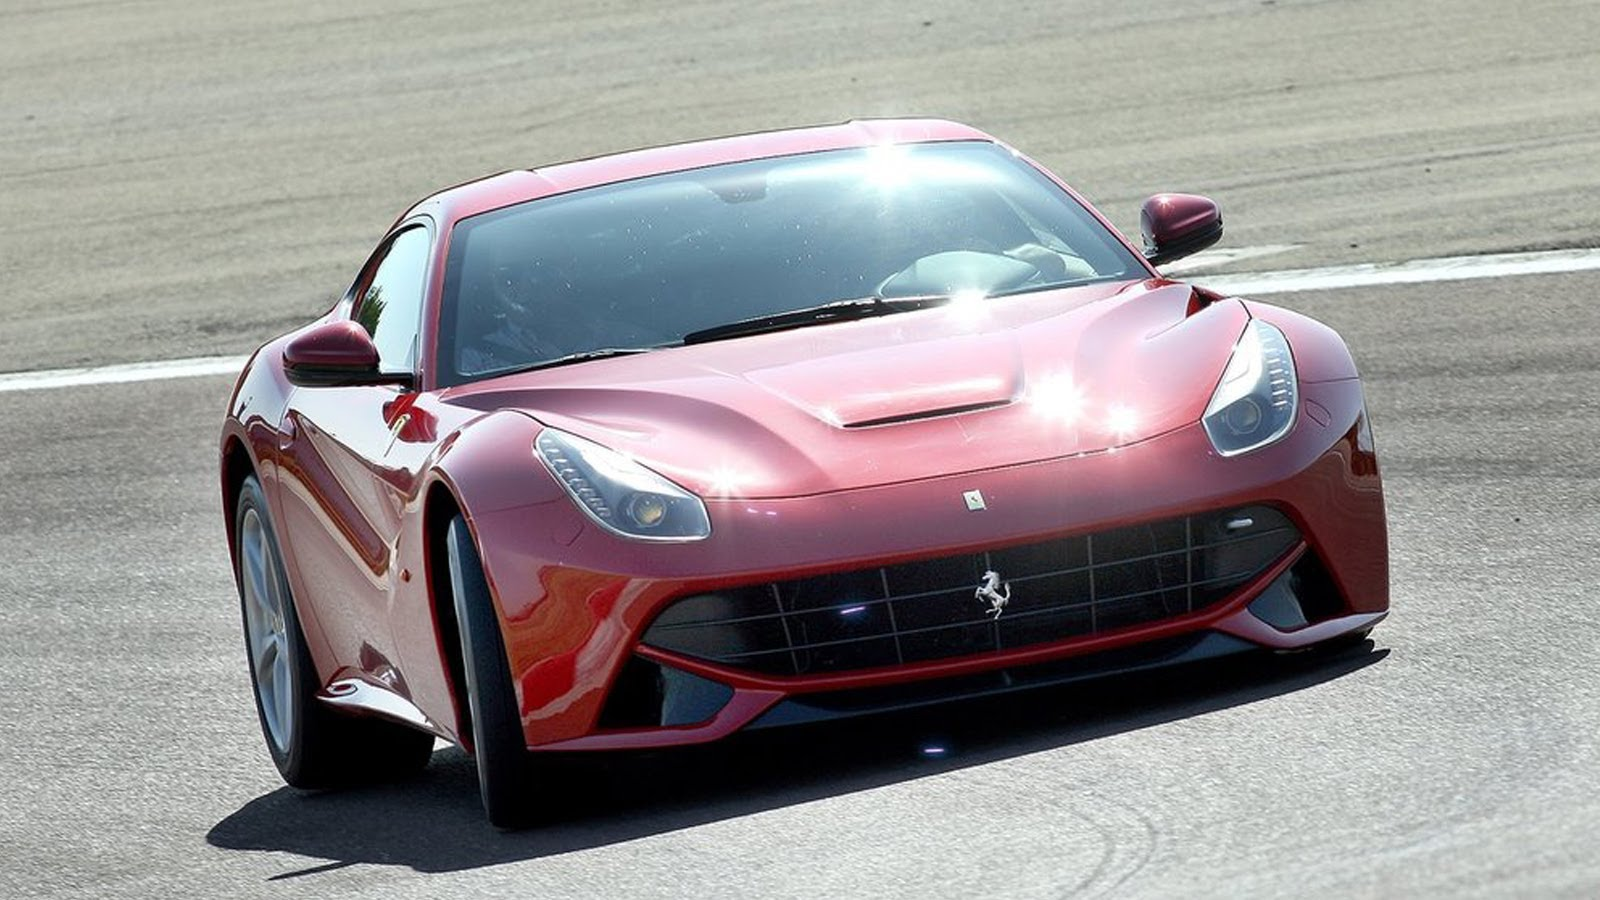 Ferrari F12berlinetta 6.3 2013 photo - 12